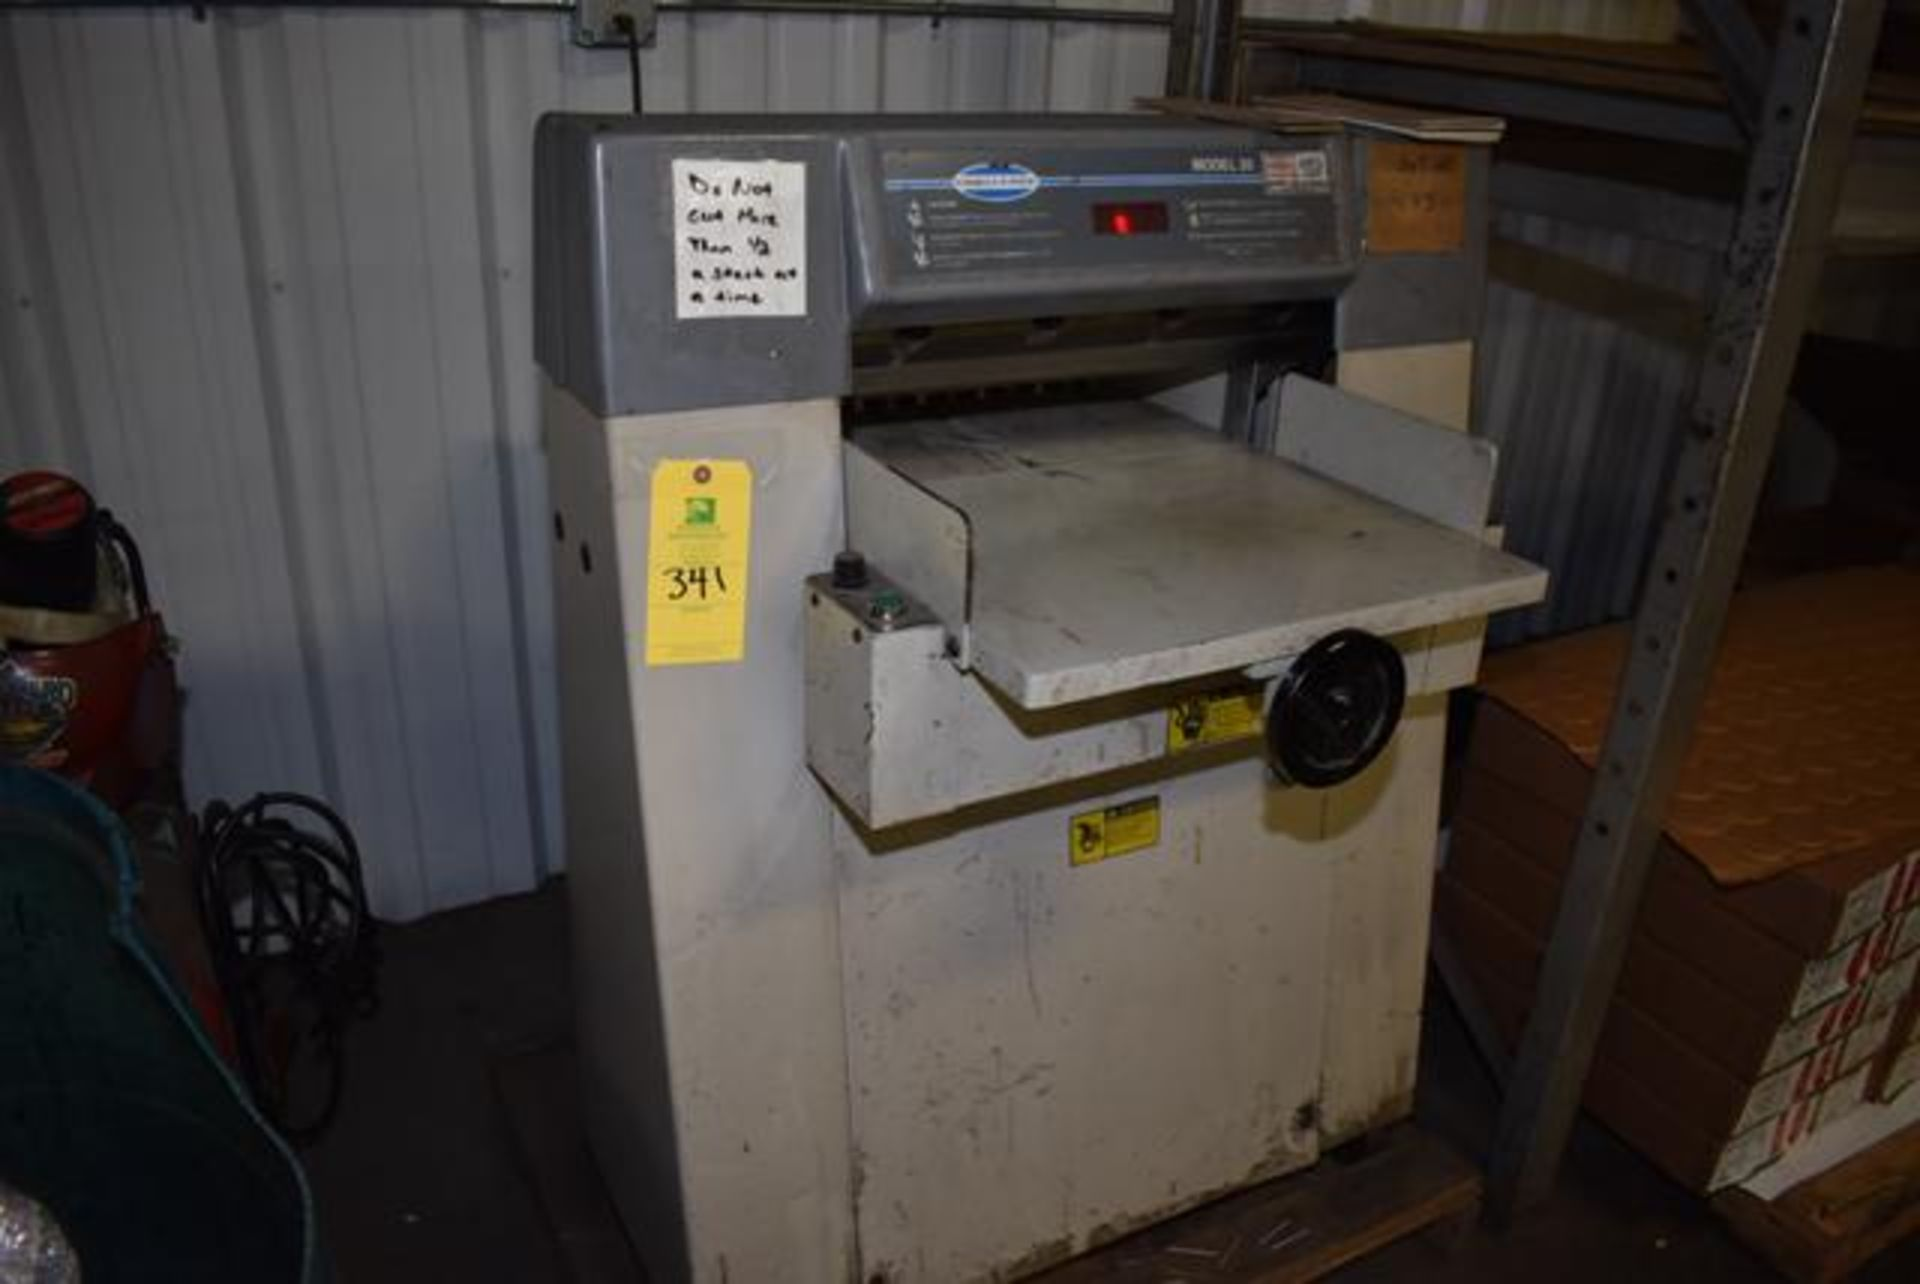 Lot 341 - ( Late Delivery Item Expected Availability Mid May) Challenge Model #20 Paper Cutter, Loading Fee: $